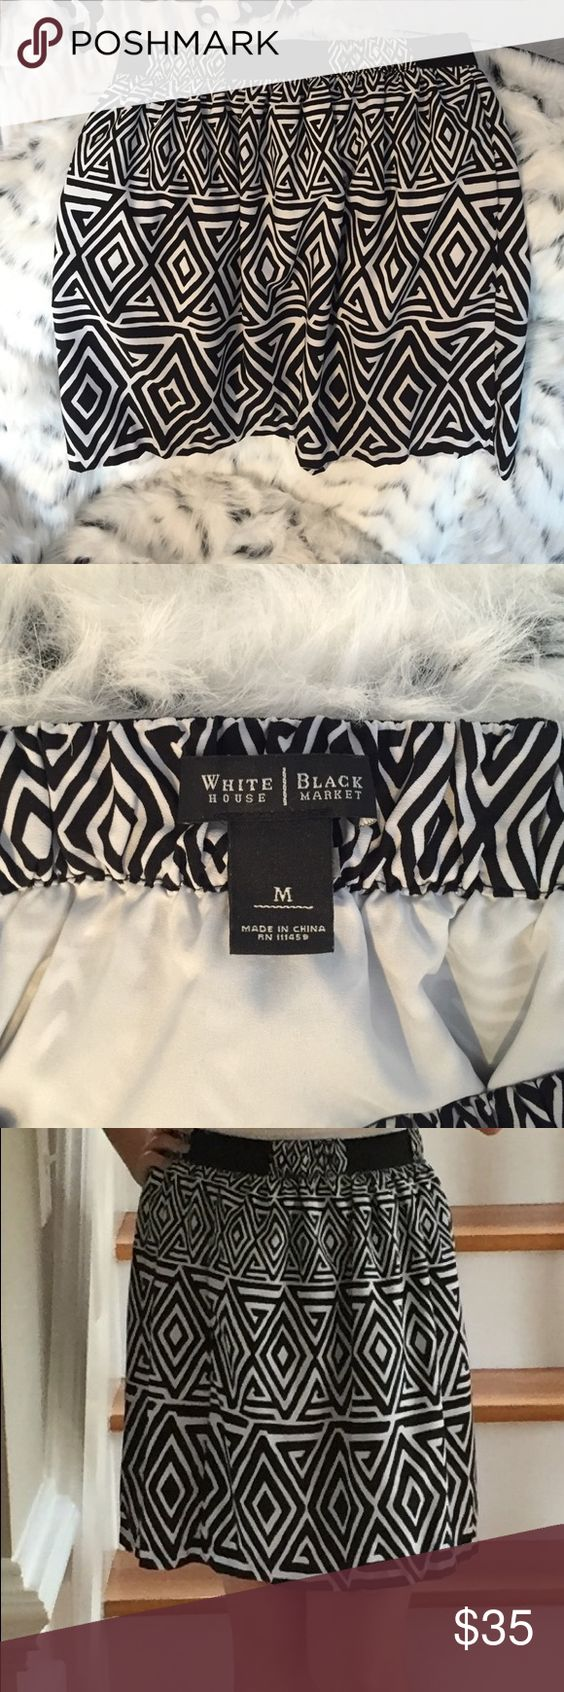 HP‼️White House Black Market Skirt This fashionable black and white patterned skirt from White House Black Market is in good as new condition and is sure to make all of your dressy outfits look great. Whether it's for business dress, fancy date, or church clothing, it is sure to provide a fashionable sense. It is a size medium but could also fit a small. White House Black Market Skirts